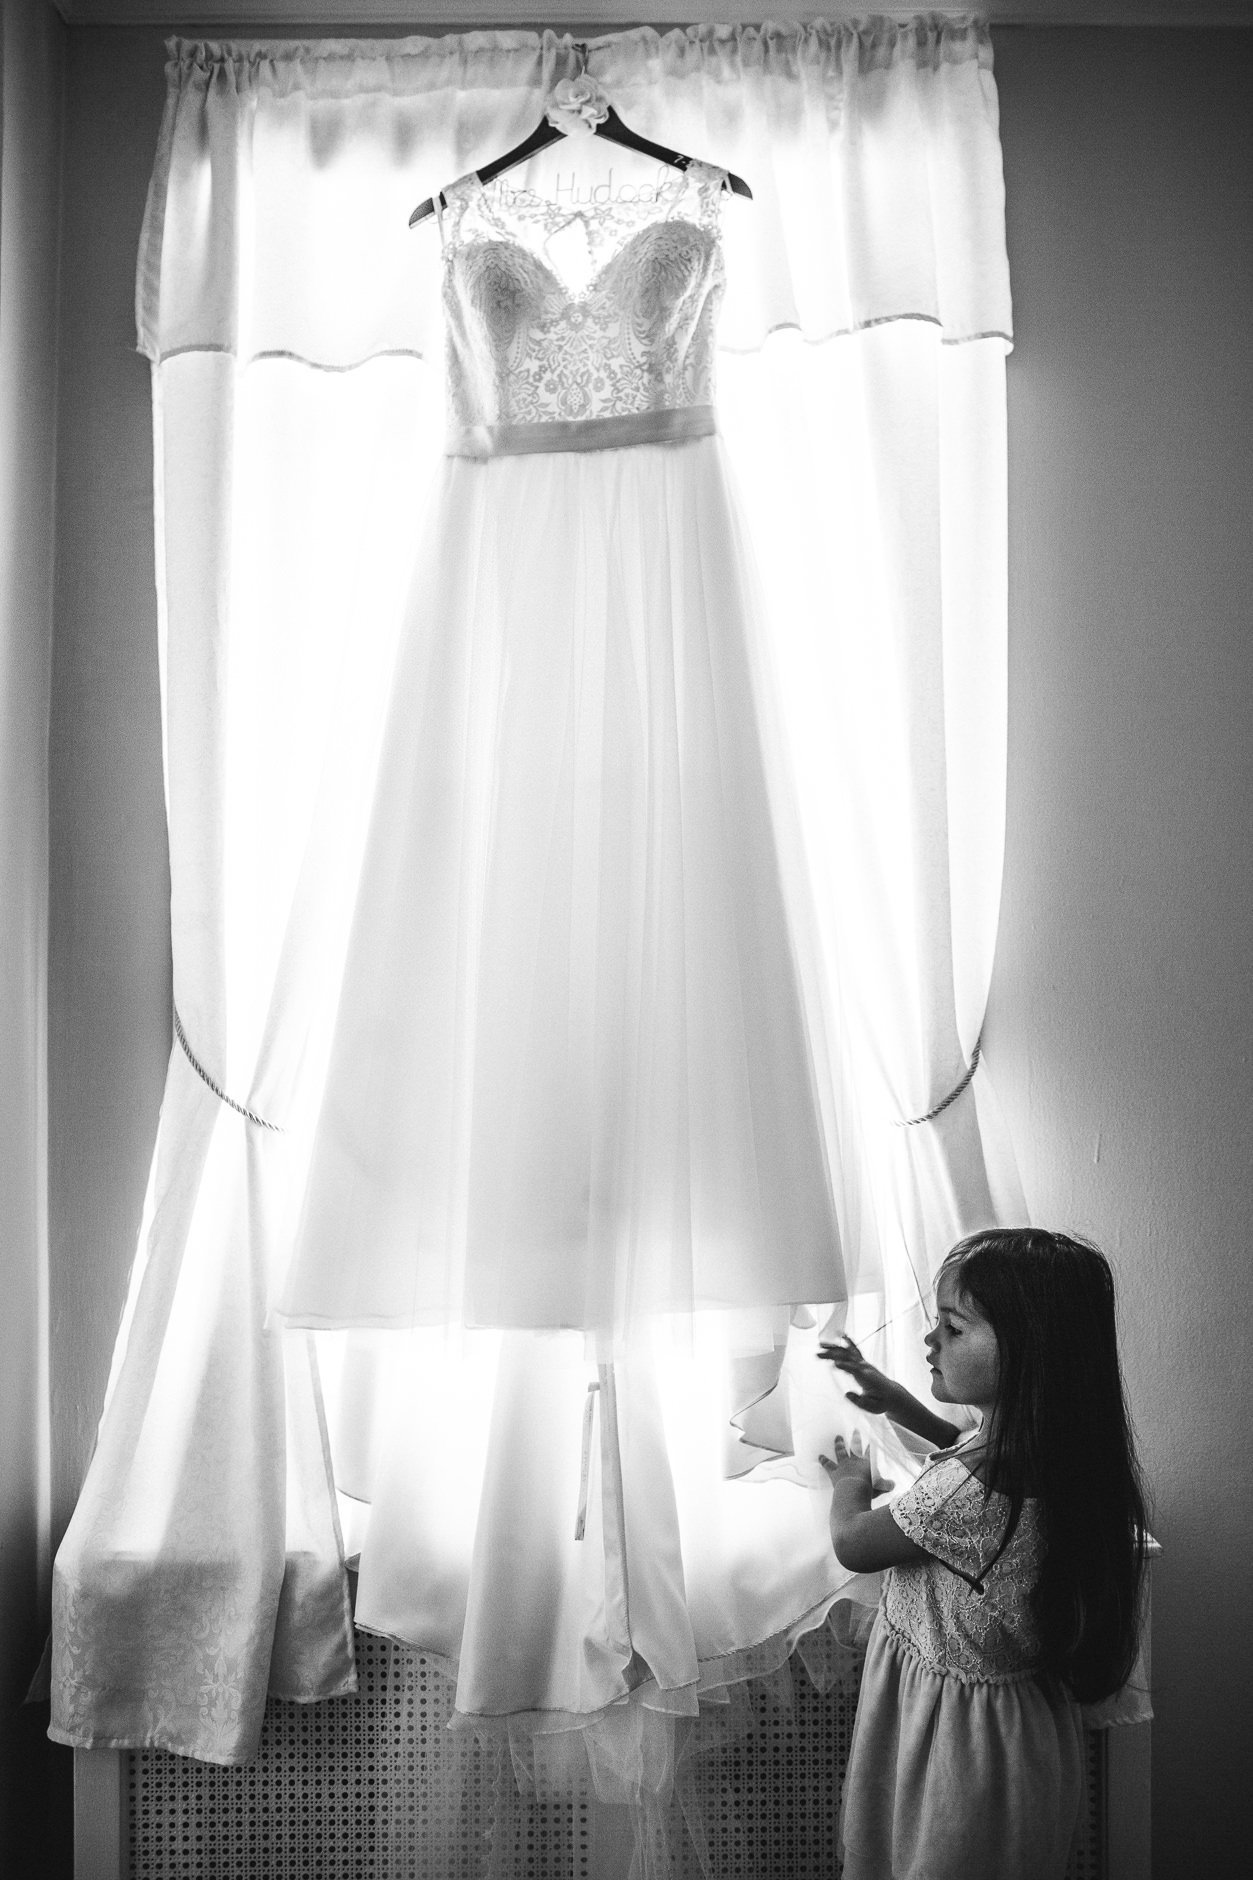 san-francisco-wedding-photographer-alice-che-photography-flower-girl-playing-with-dress